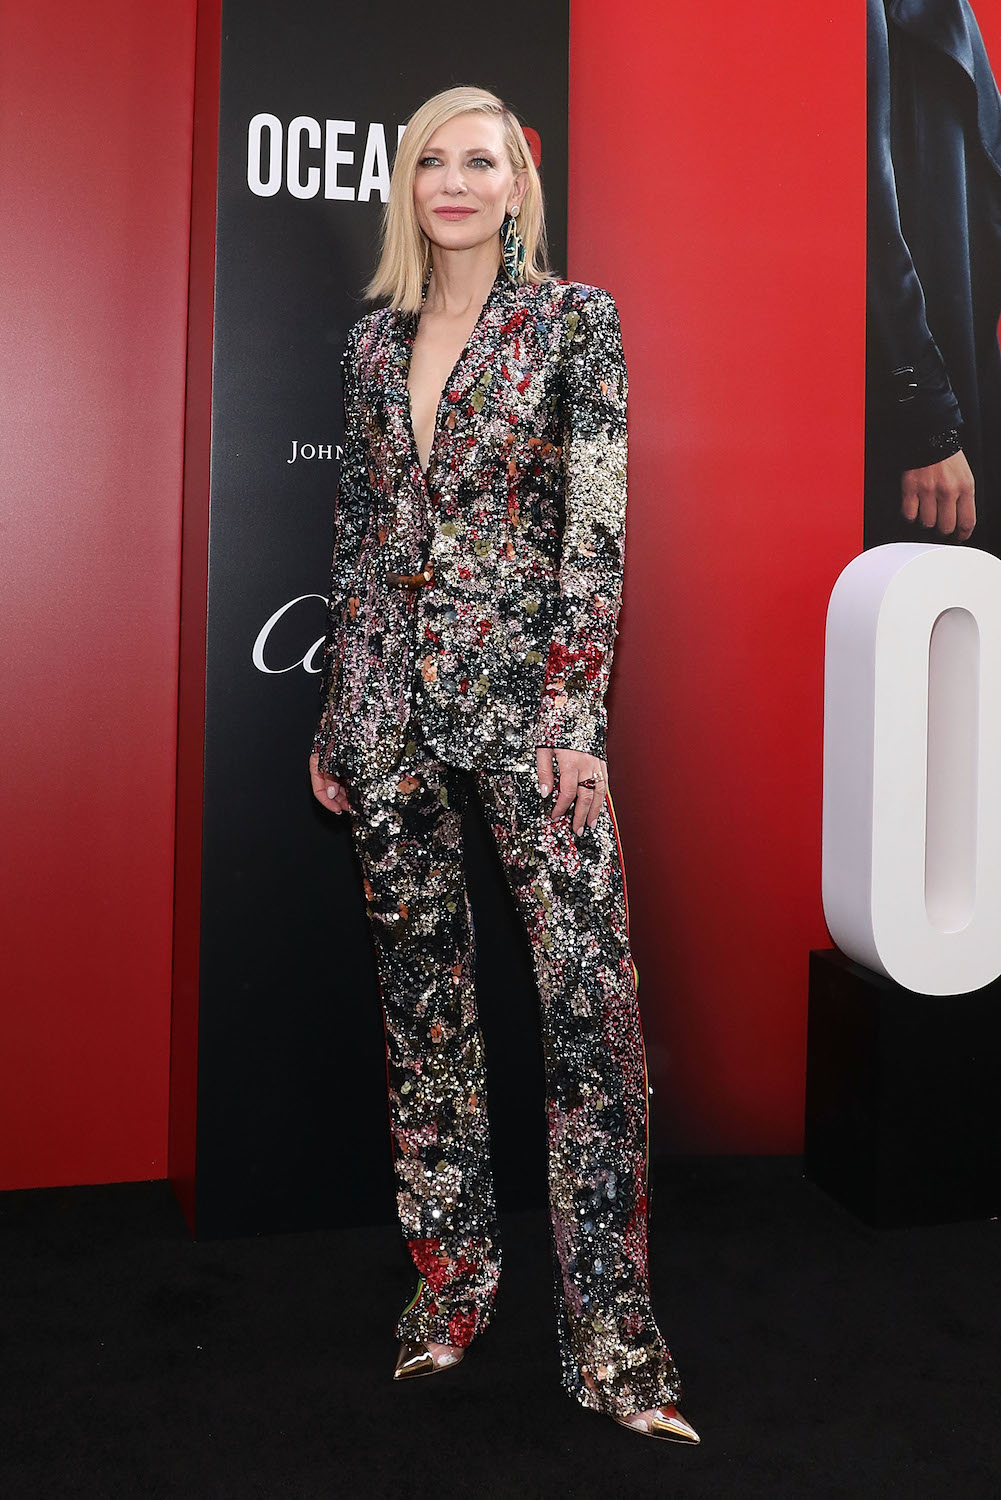 "NEW YORK, NY - JUNE 05: Cate Blanchett attends the world premiere of ""Ocean's 8"" at Alice Tully Hall at Lincoln Center on June 5, 2018 in New York City. (Photo by Taylor Hill/Getty Images)"